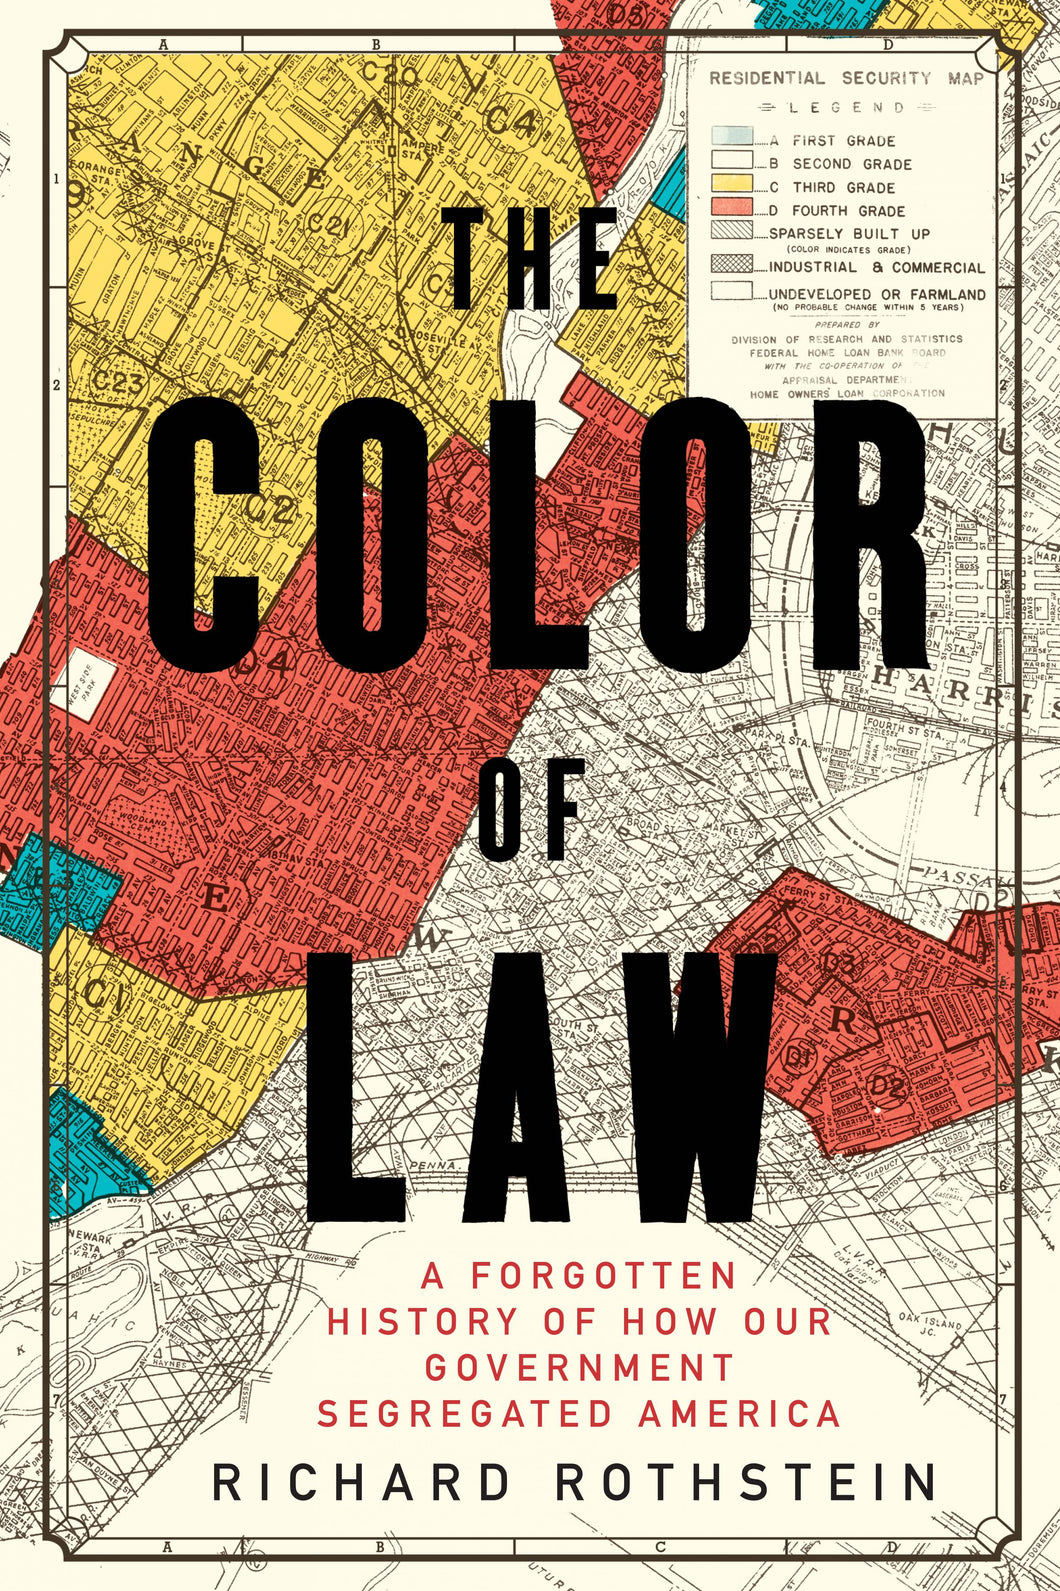 The Color of Law: A Forgotten History of How Our Government Segregated America by Richard Rothstein